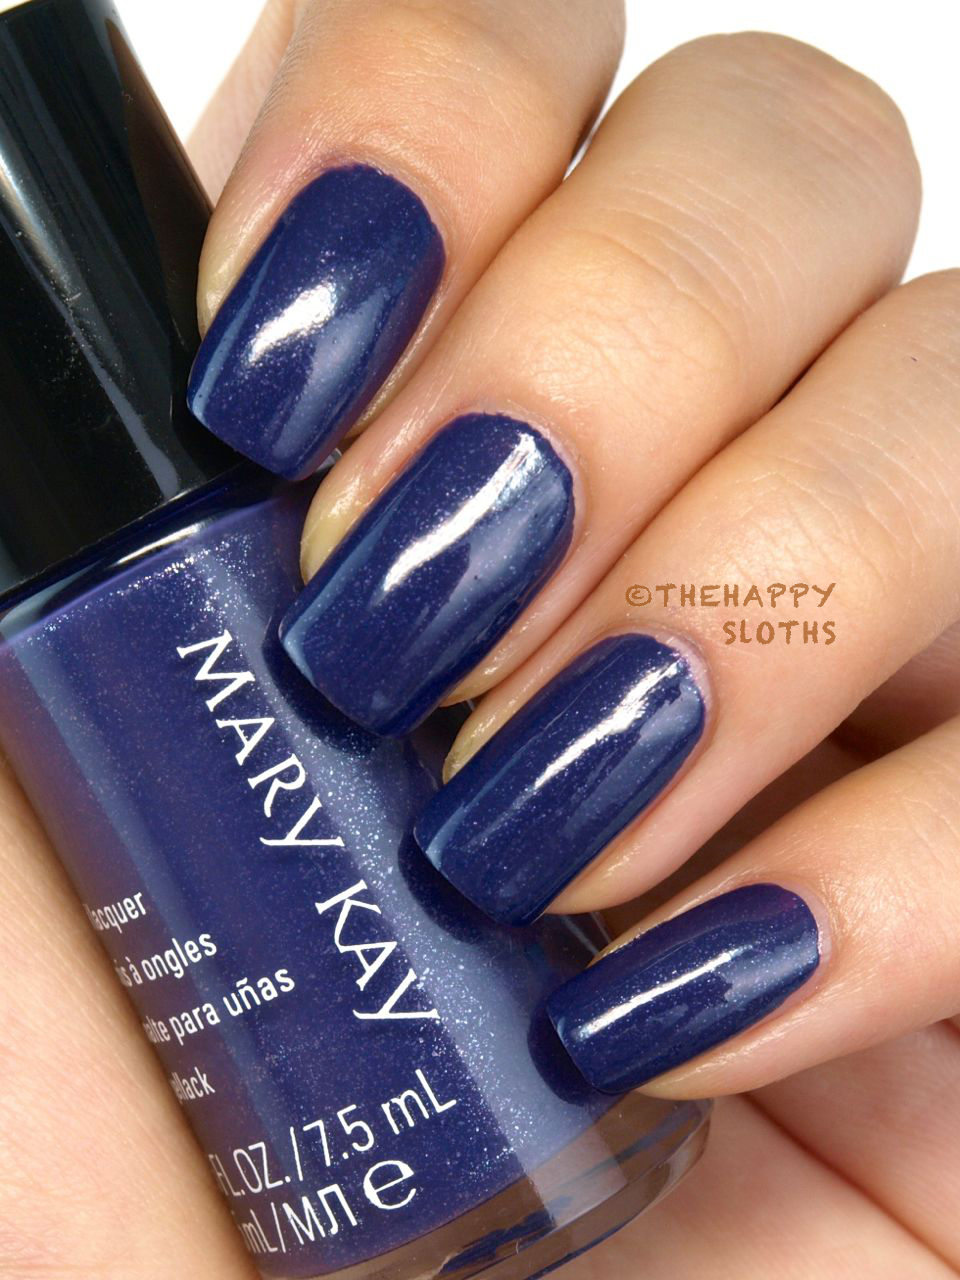 fall 2014 mary kay limited edition midnight jewels collection nail lacquer in sapphire noir review and swatches